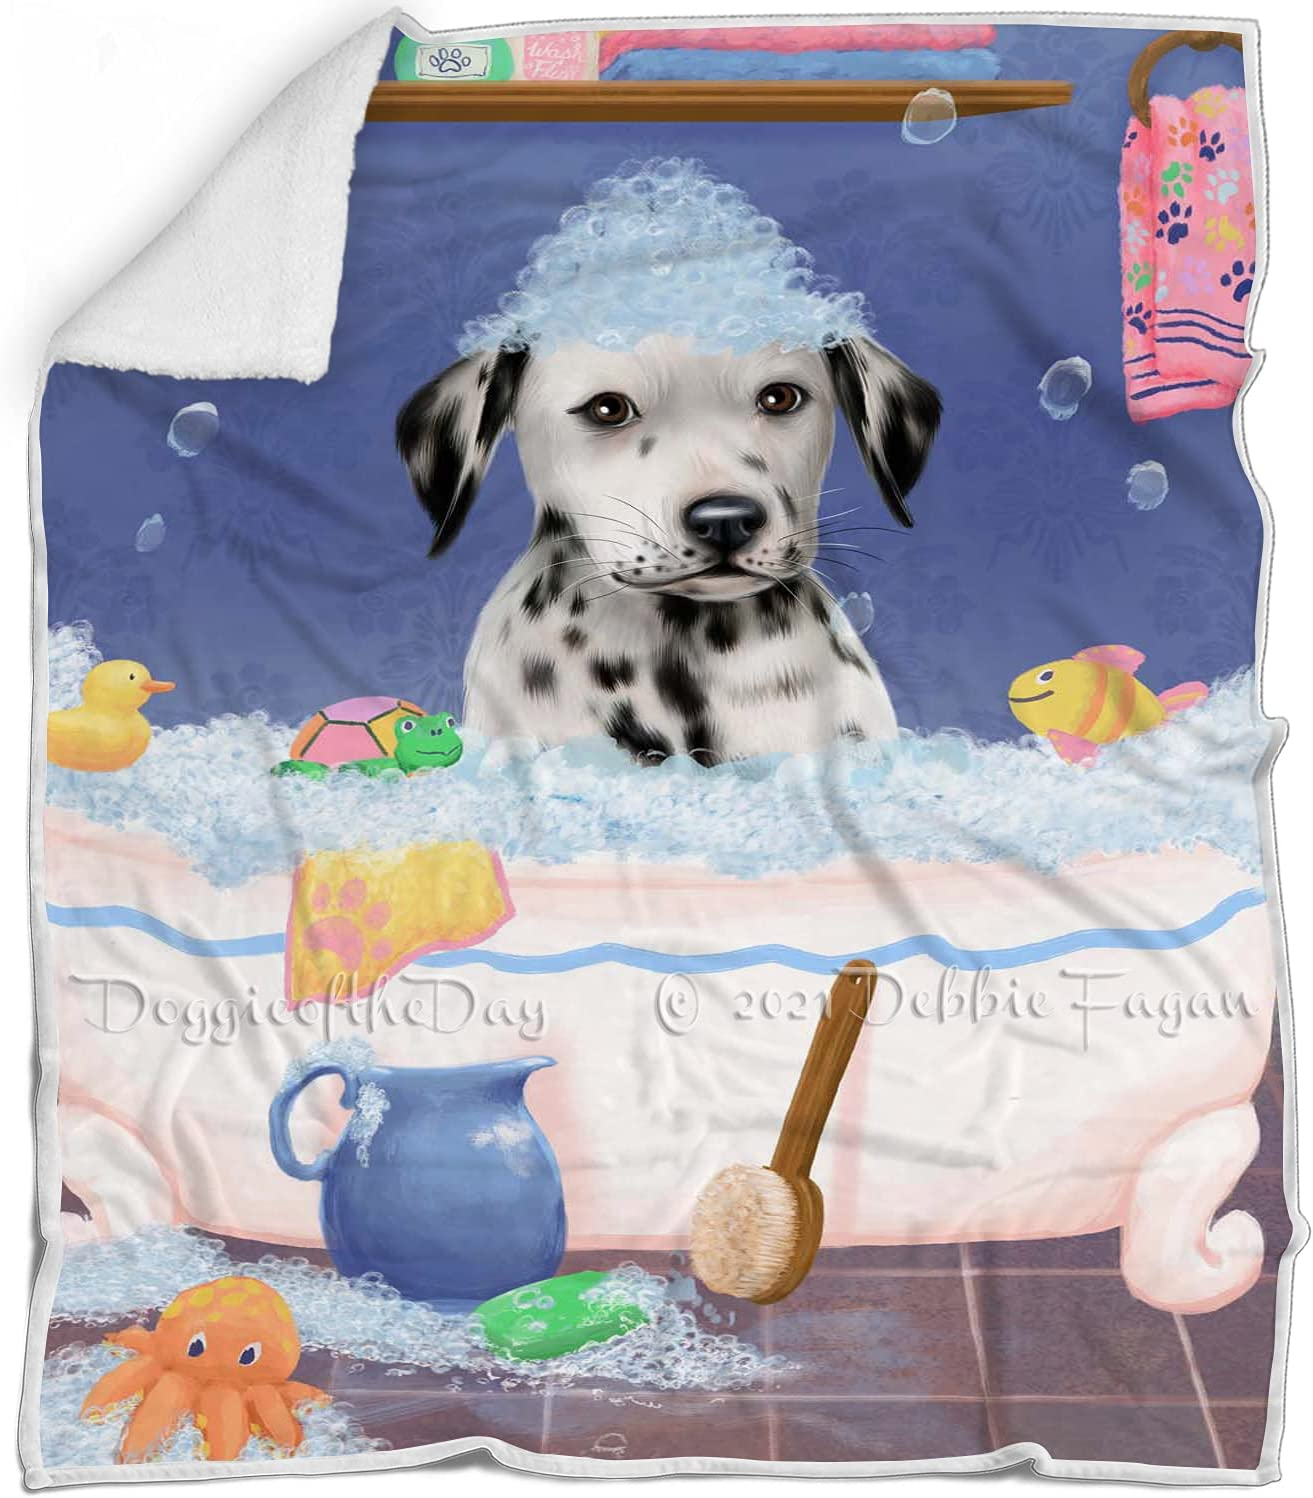 Rub A Spring new work one after another Dub Dog excellence in Tub Blanket Dalmatian Fluffy - Multicolor